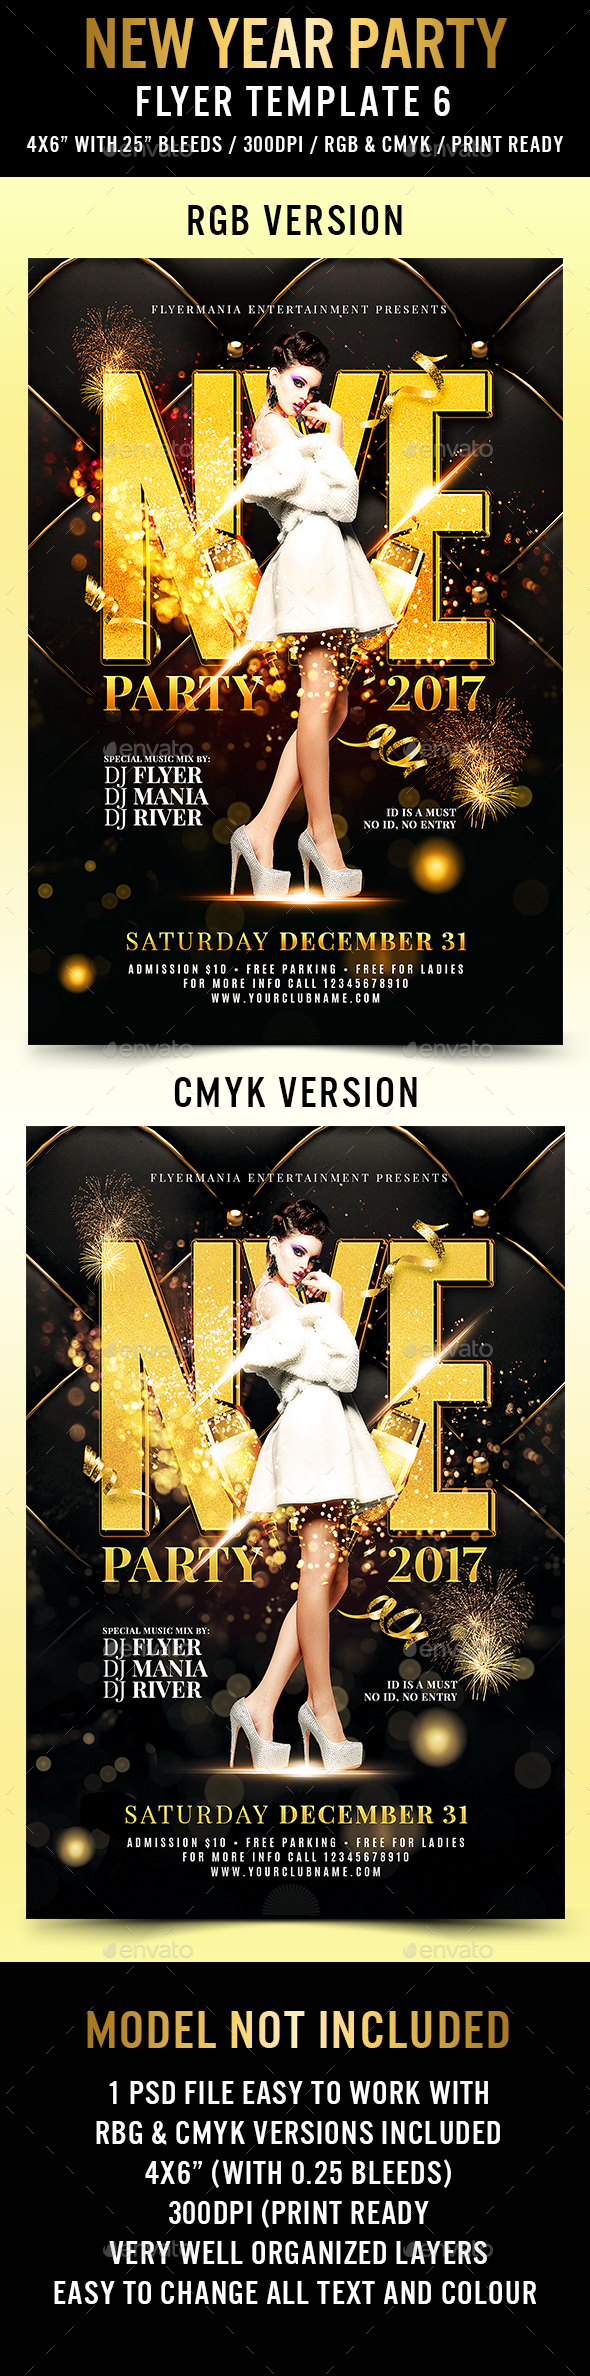 New Year Eve Party Flyer Template 6 - Flyers Print Templates